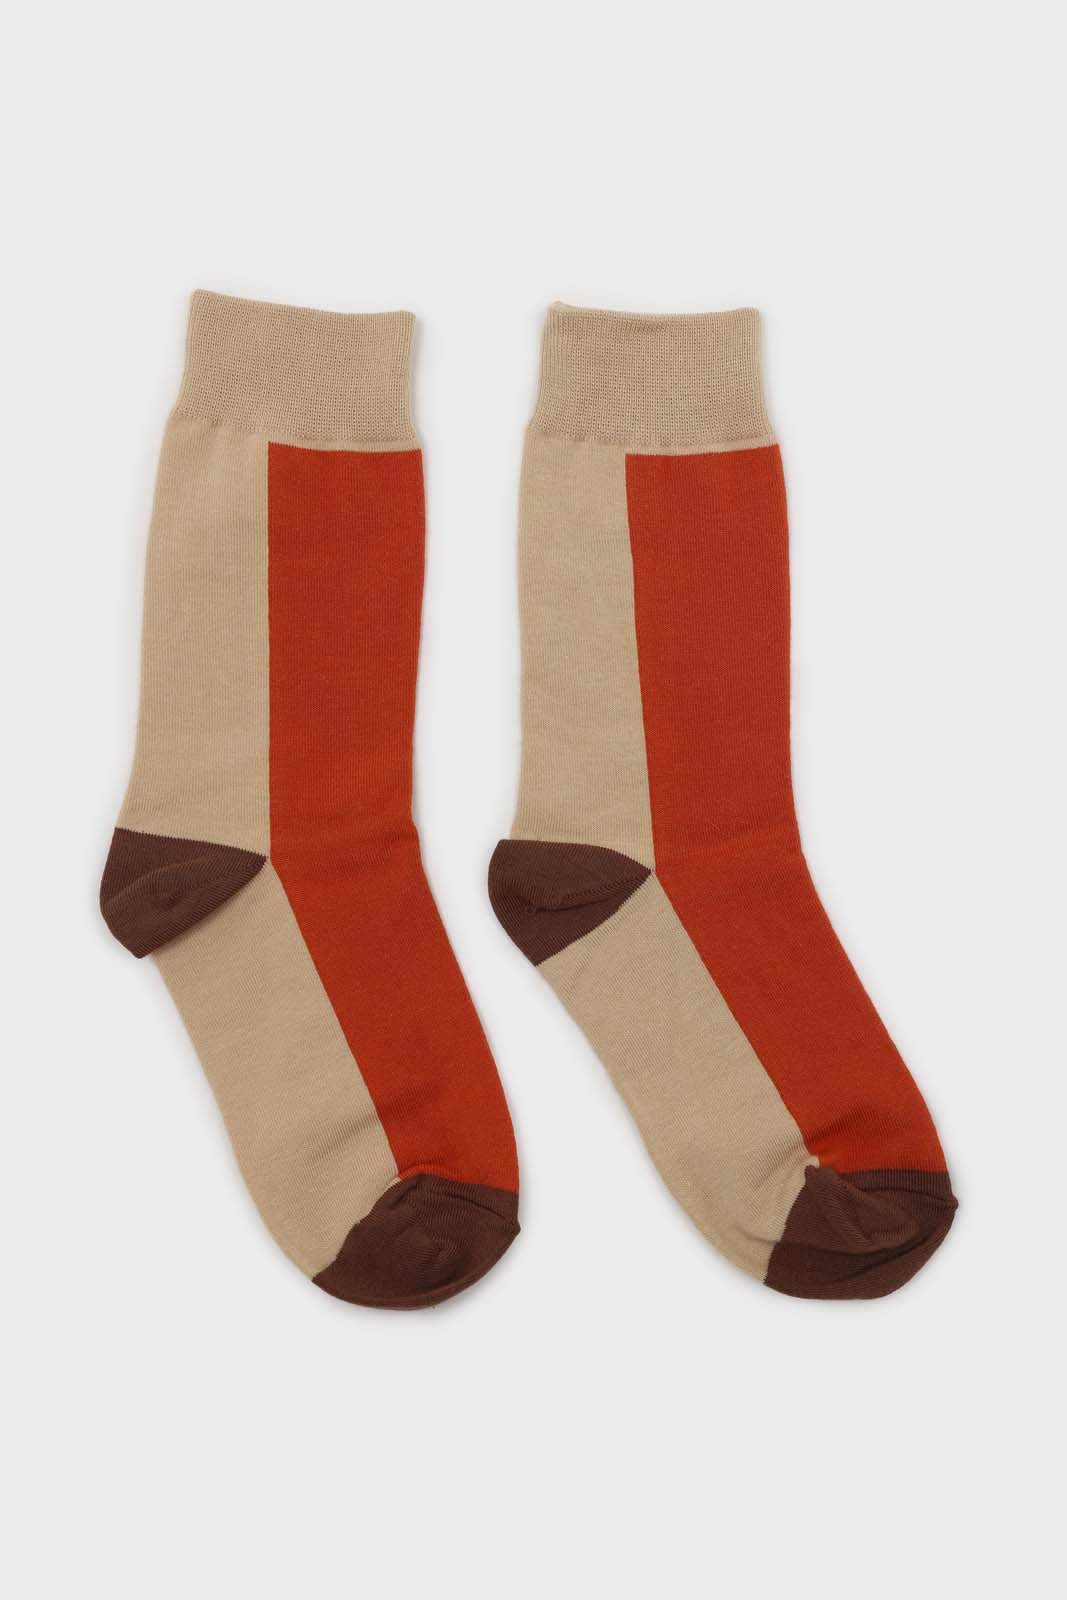 Orange and beige thick vertical strip socks3